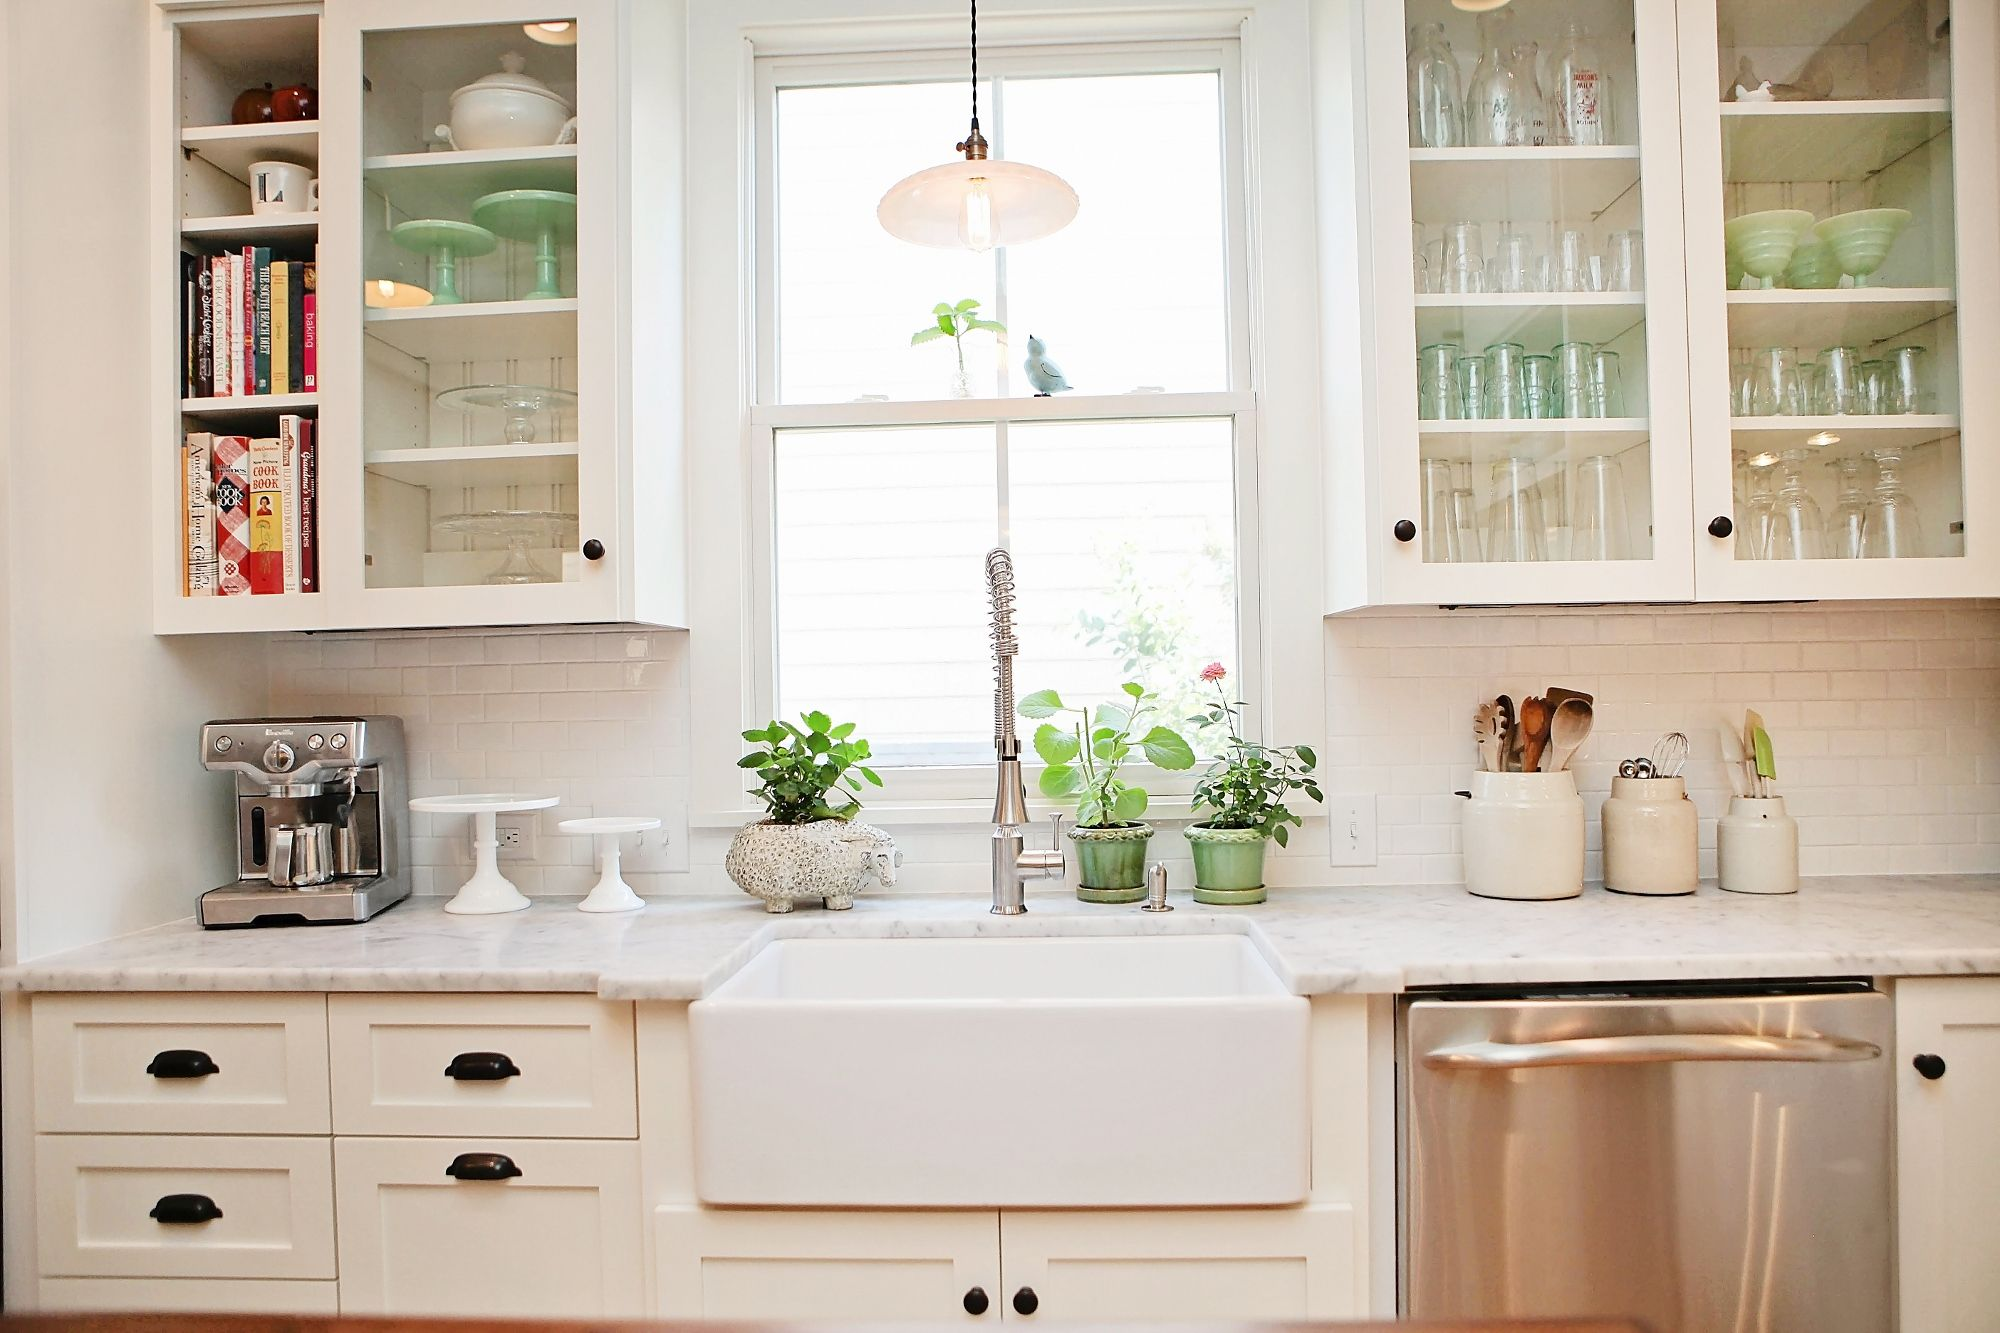 Amazing White Kitchen Farmhouse Sink #1: Appealing White Kitchen Subway Backsplash As Well As White Porcelain Farmhouse  Sink And Sweet Pendant Lighting